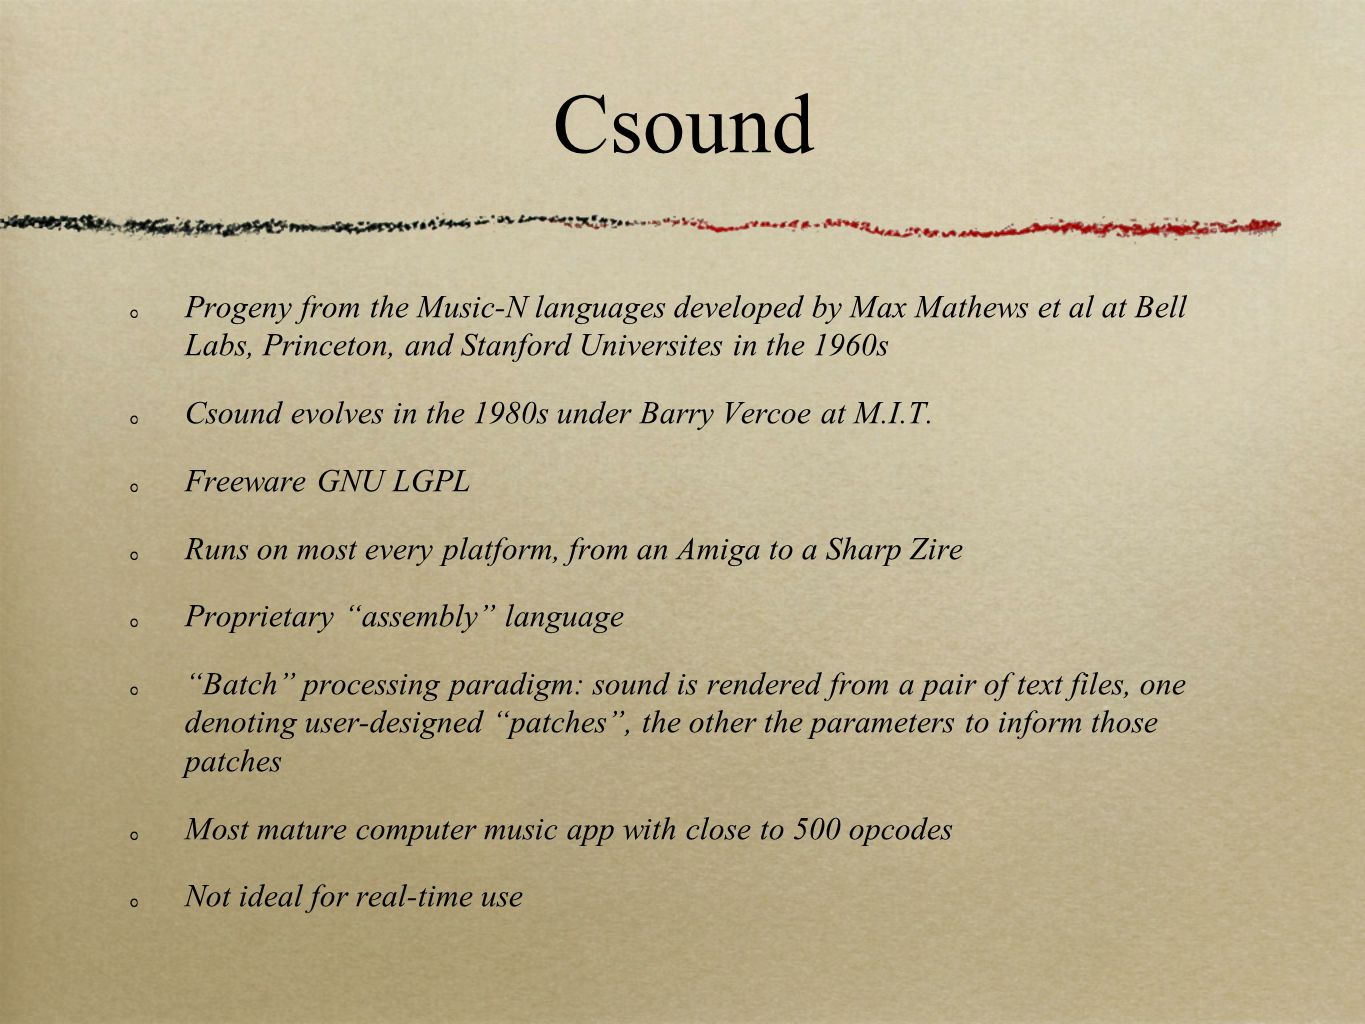 Progeny from the Music-N languages developed by Max Mathews et al at Bell Labs, Princeton, and Stanford Universites in the 1960s Csound evolves in the